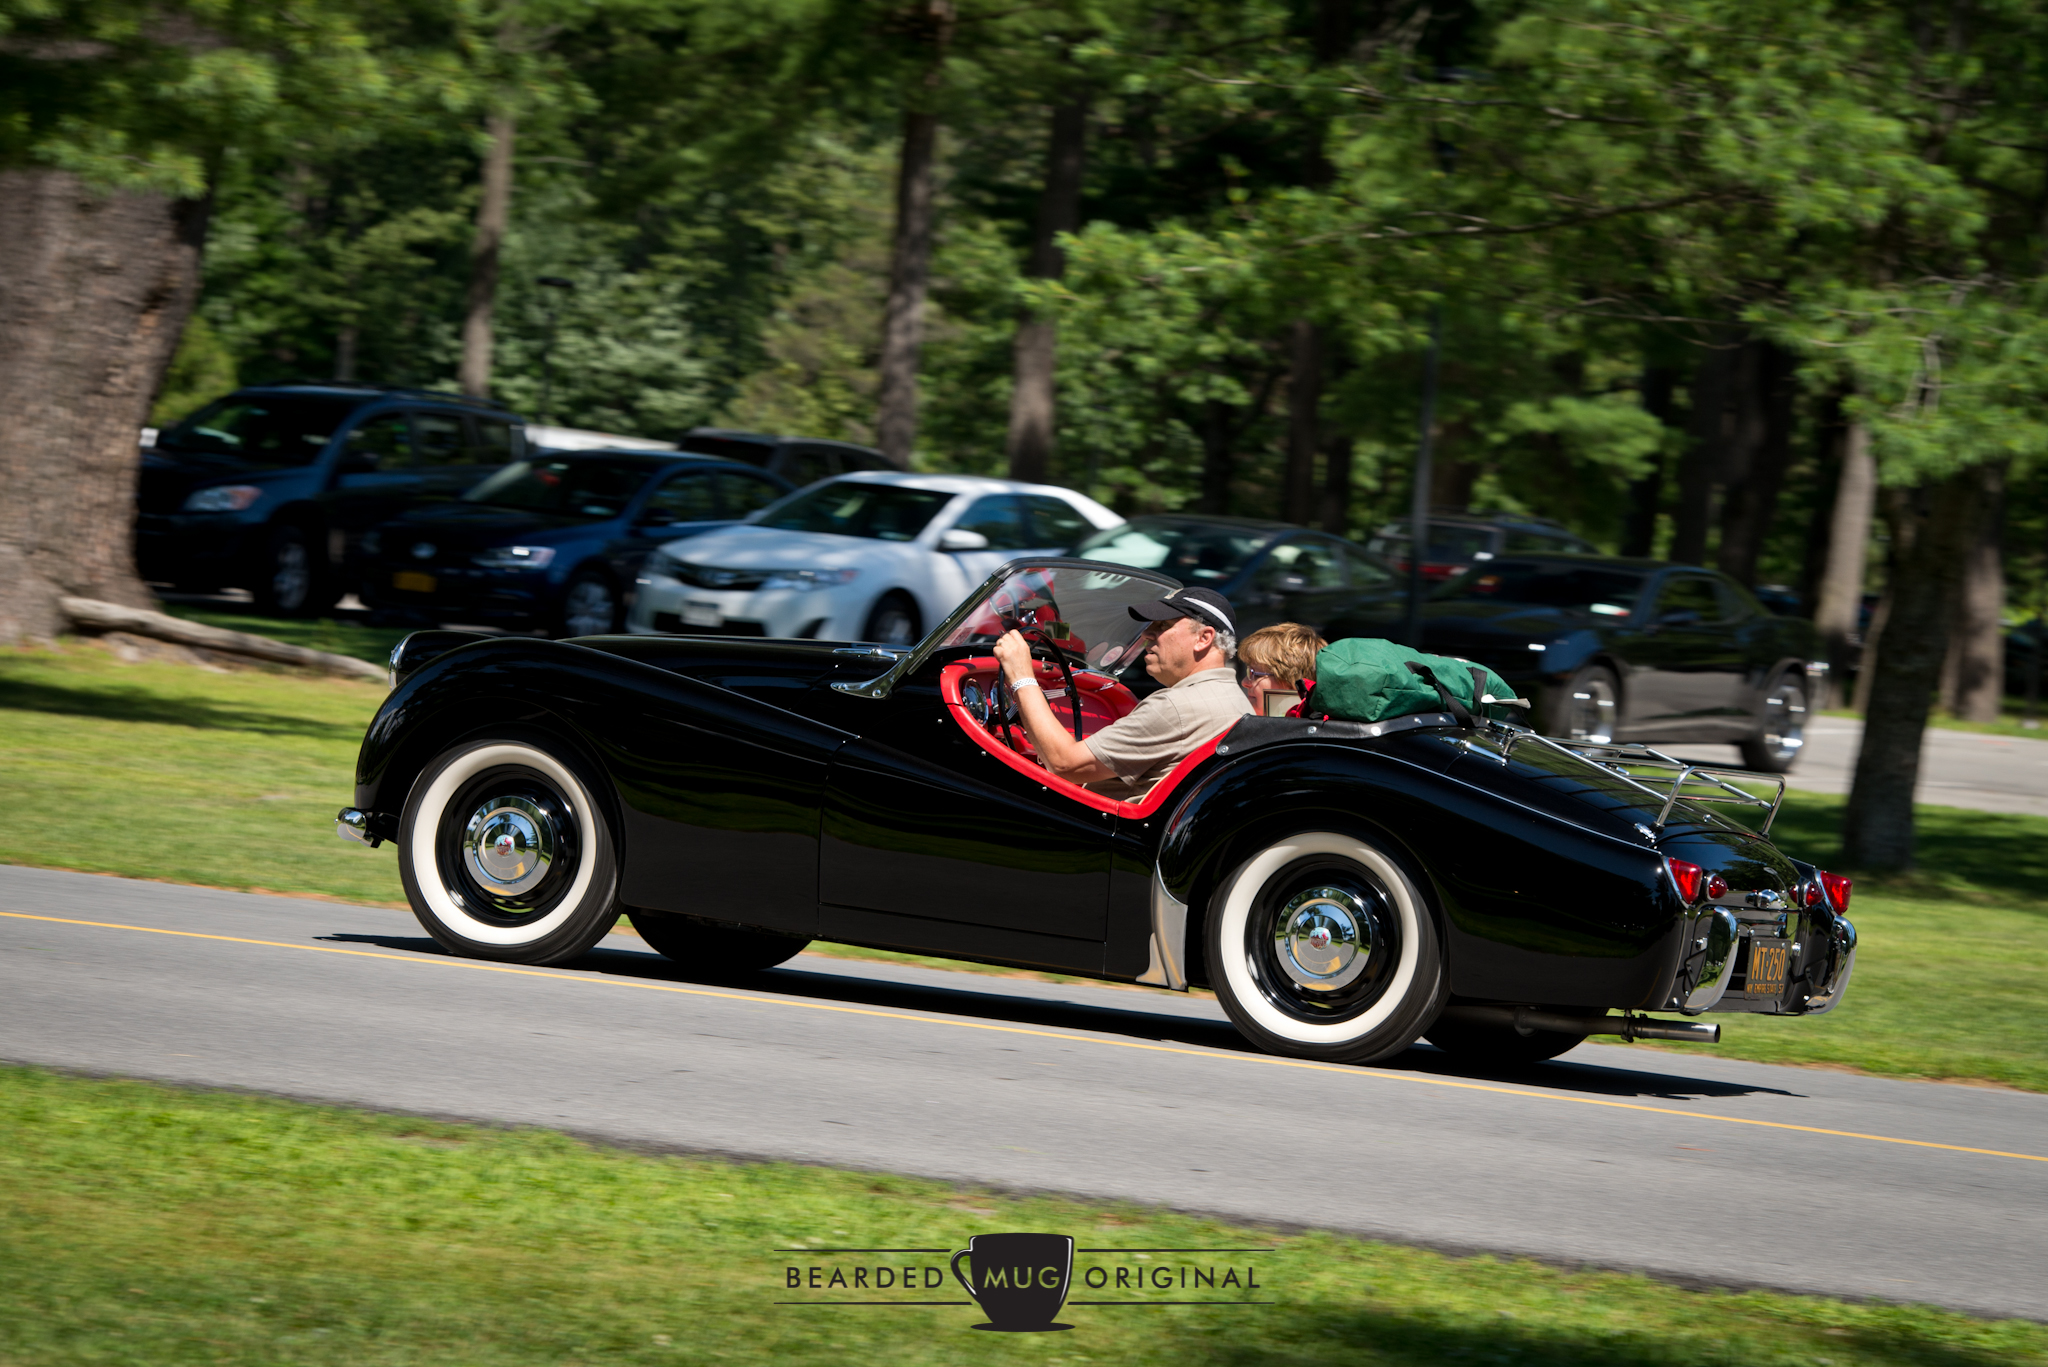 1957 Triumph TR3 owned by Gene and Glenda Tricozzi was another former Best of Show in attendance.